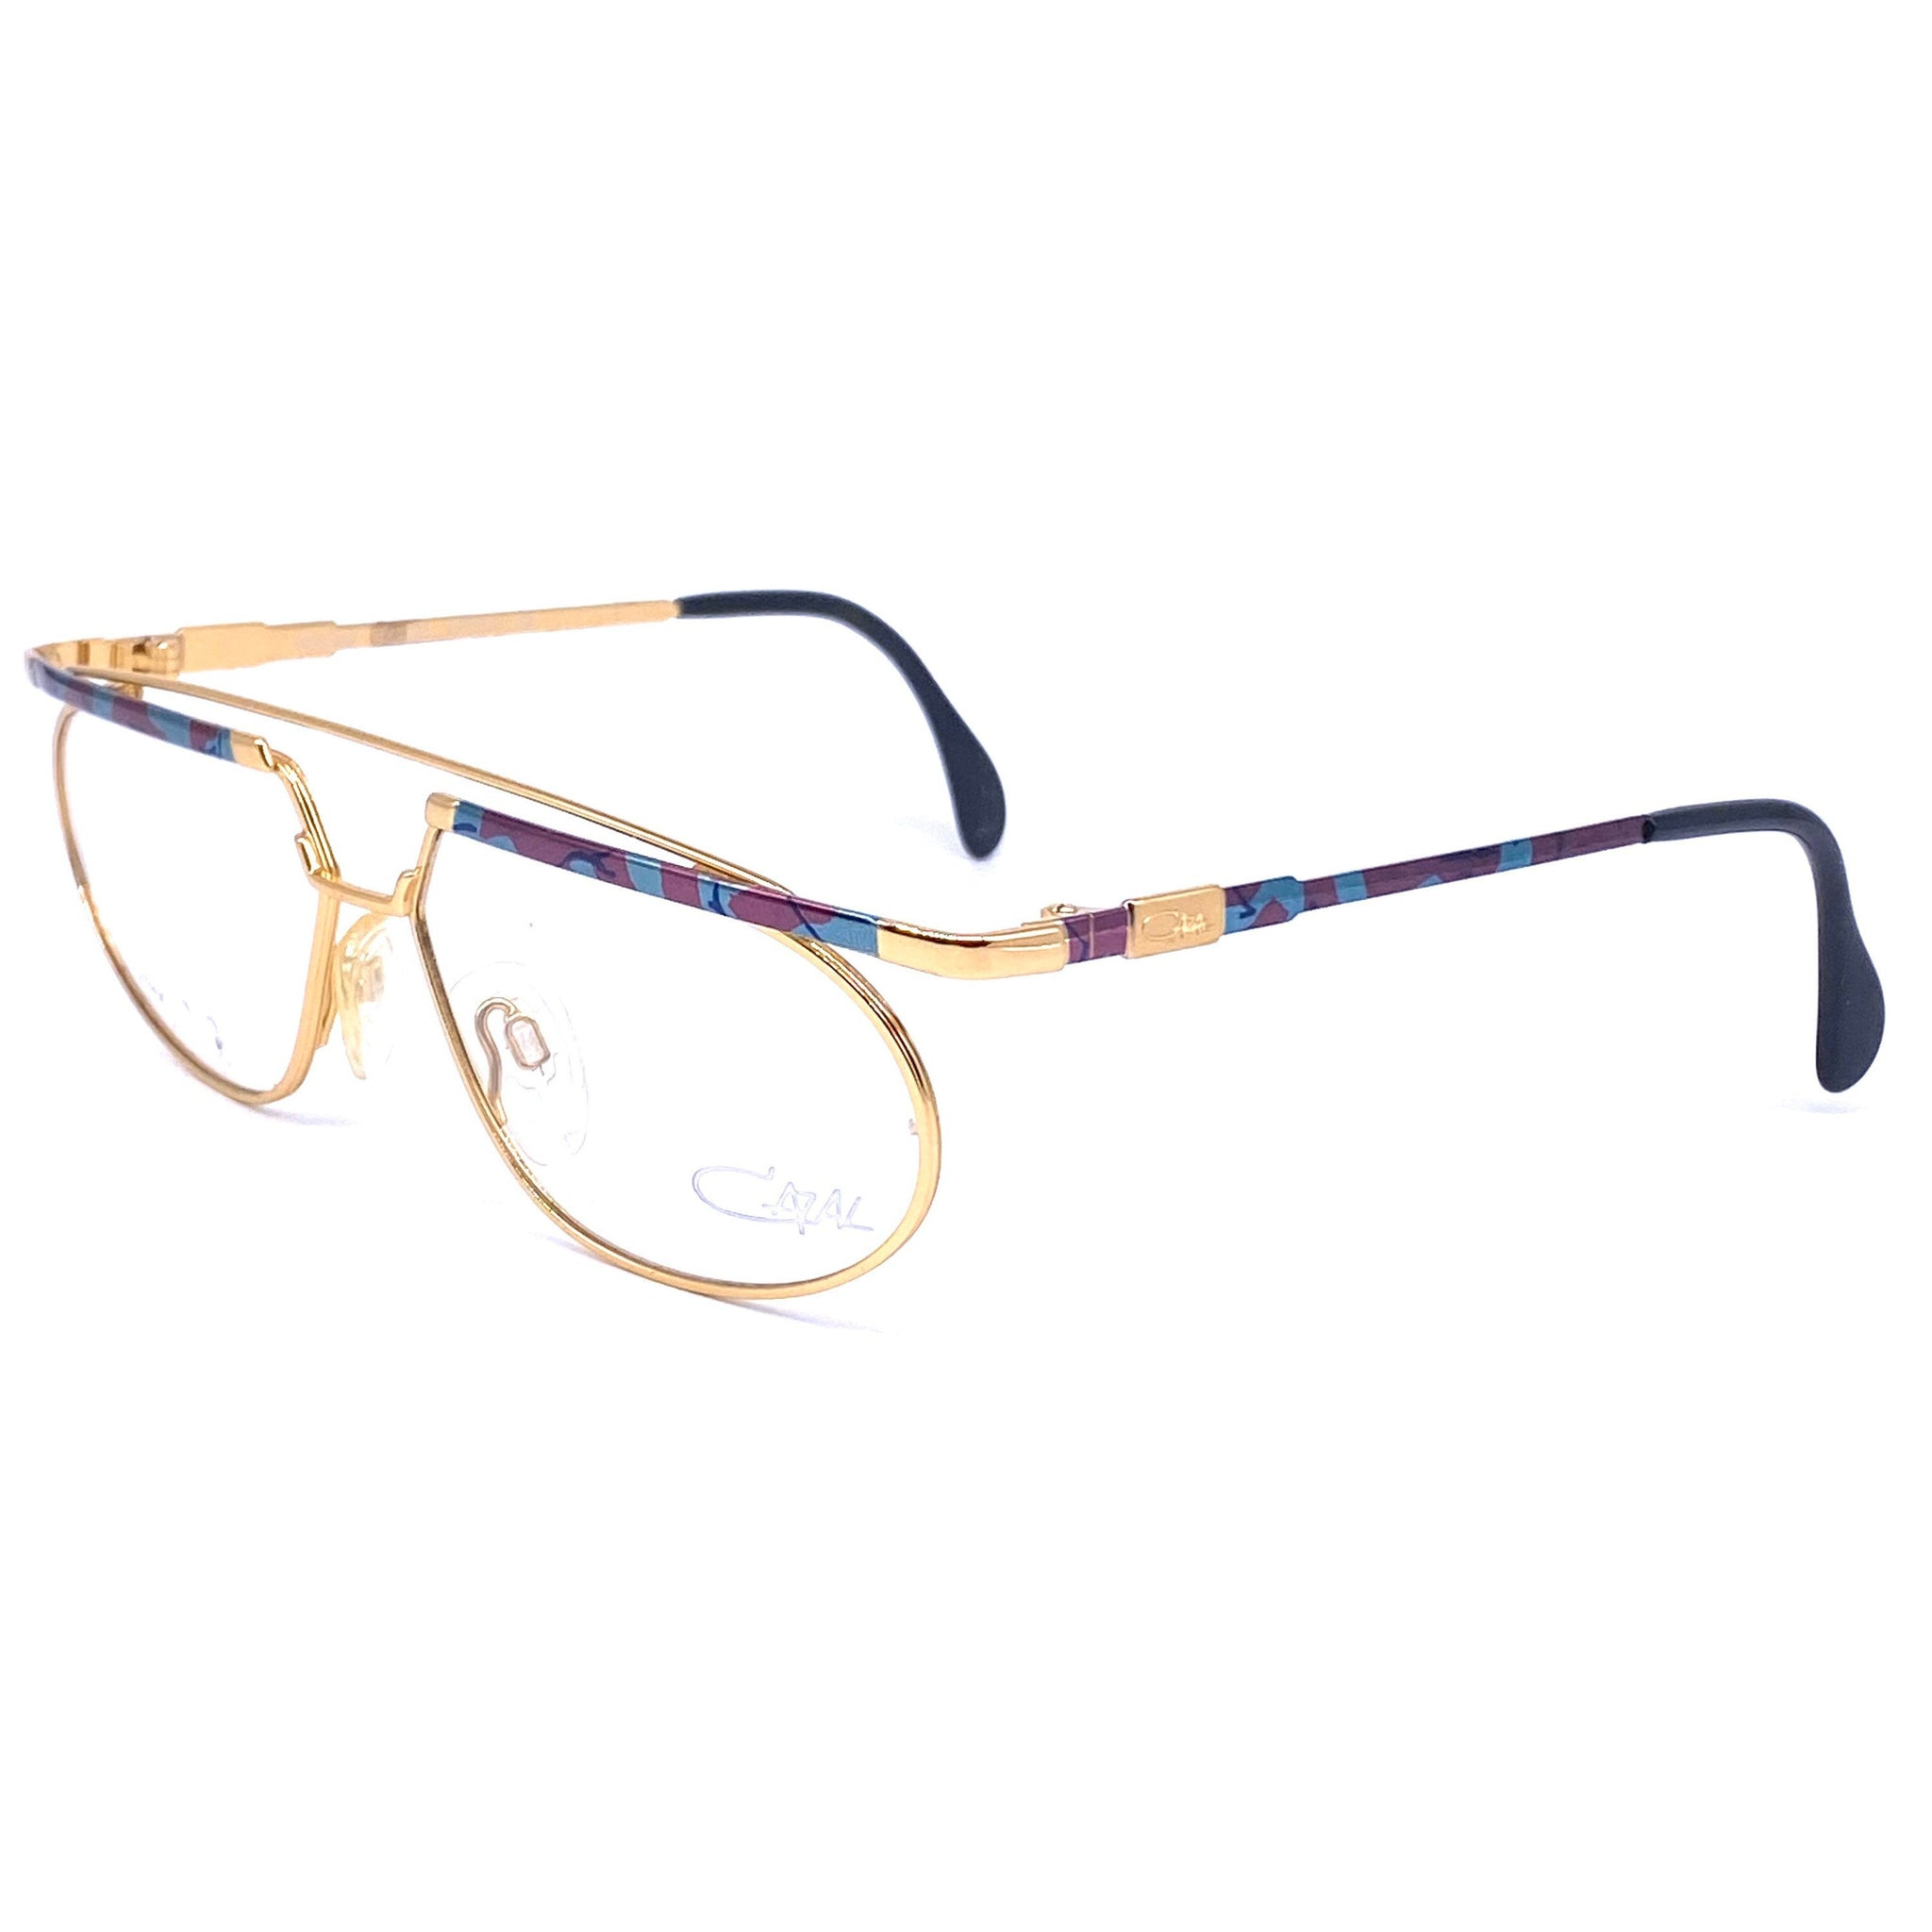 Cazal oval gold / multicolor enameled  avant Garde eyeglasses frames made in W. Germany - viceversashop